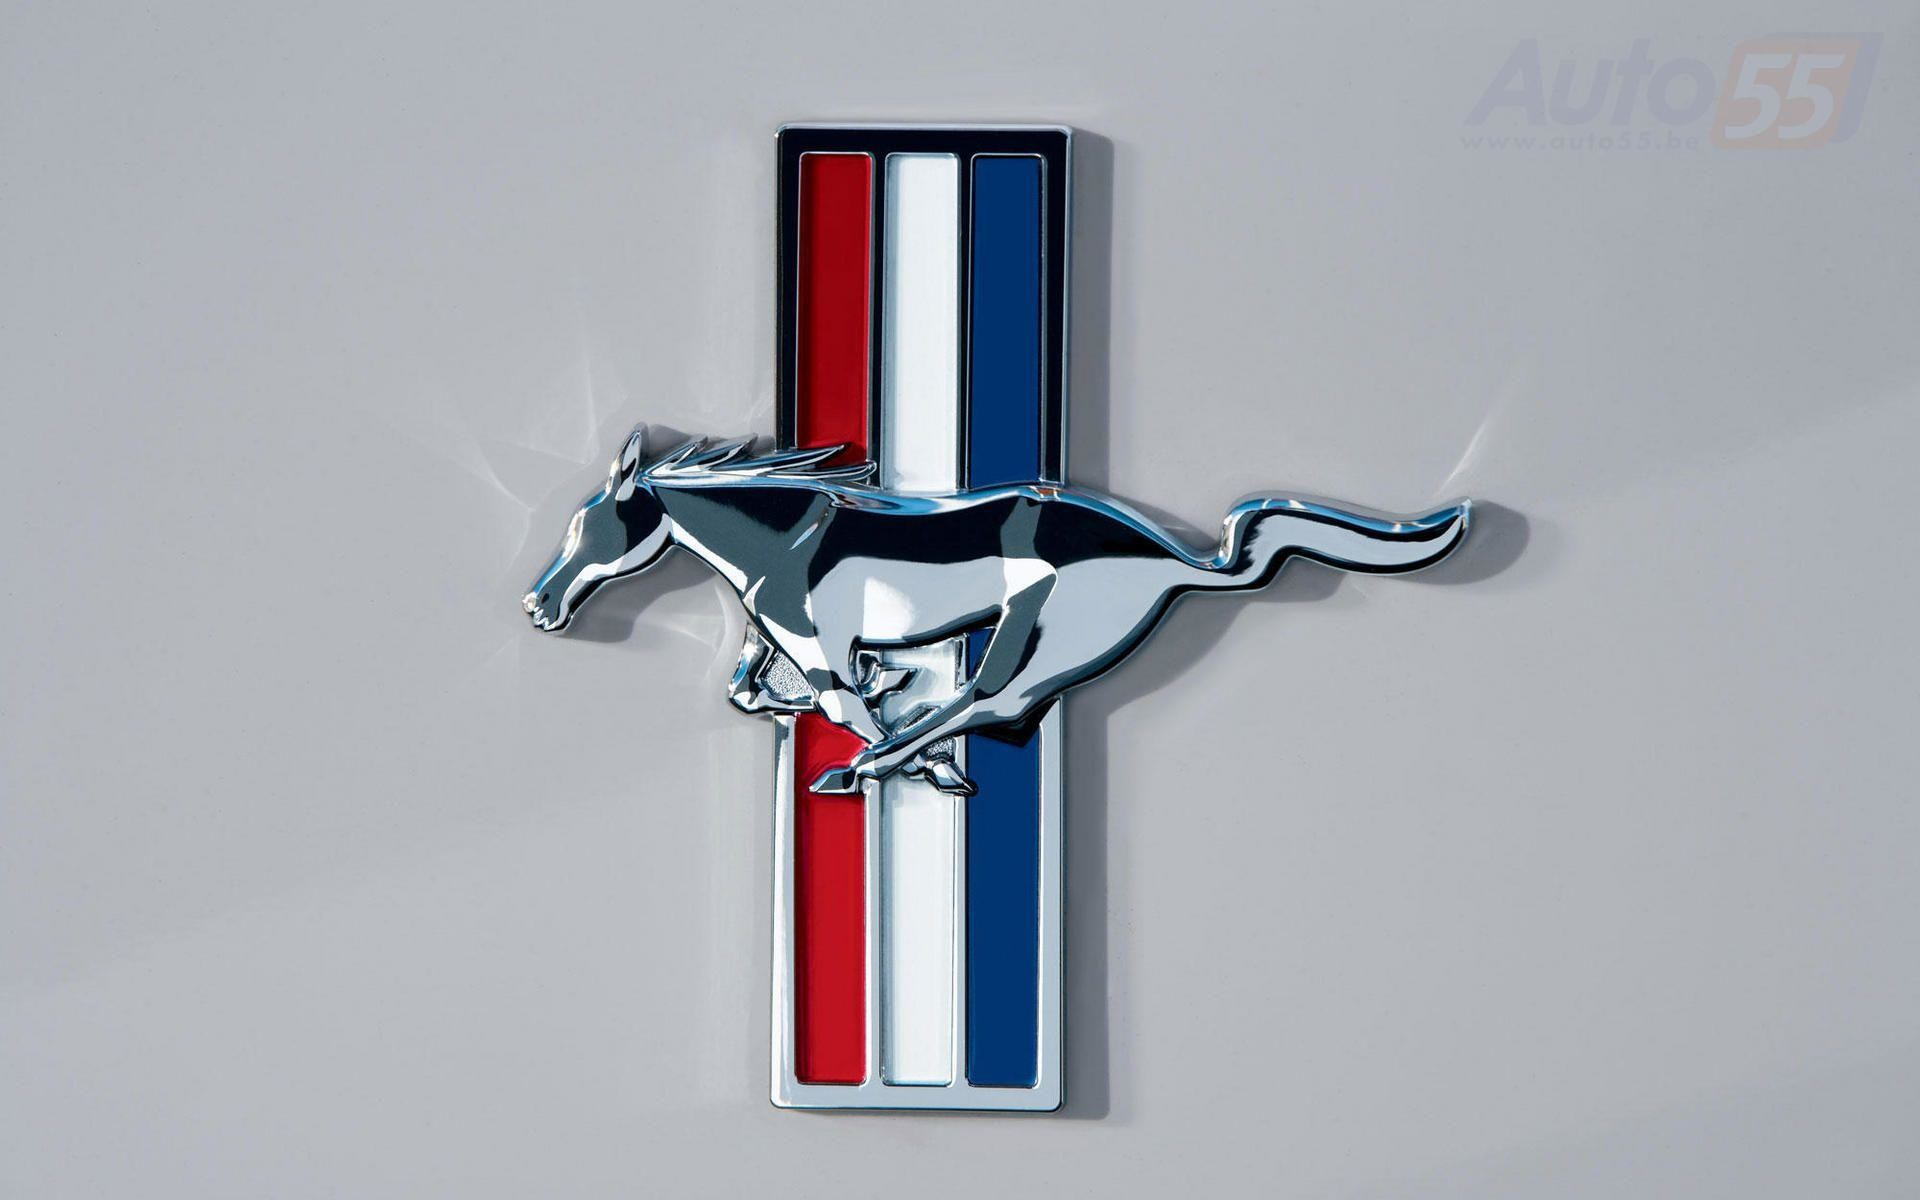 1920x1200 wallpapers for ford mustang logo wallpapers